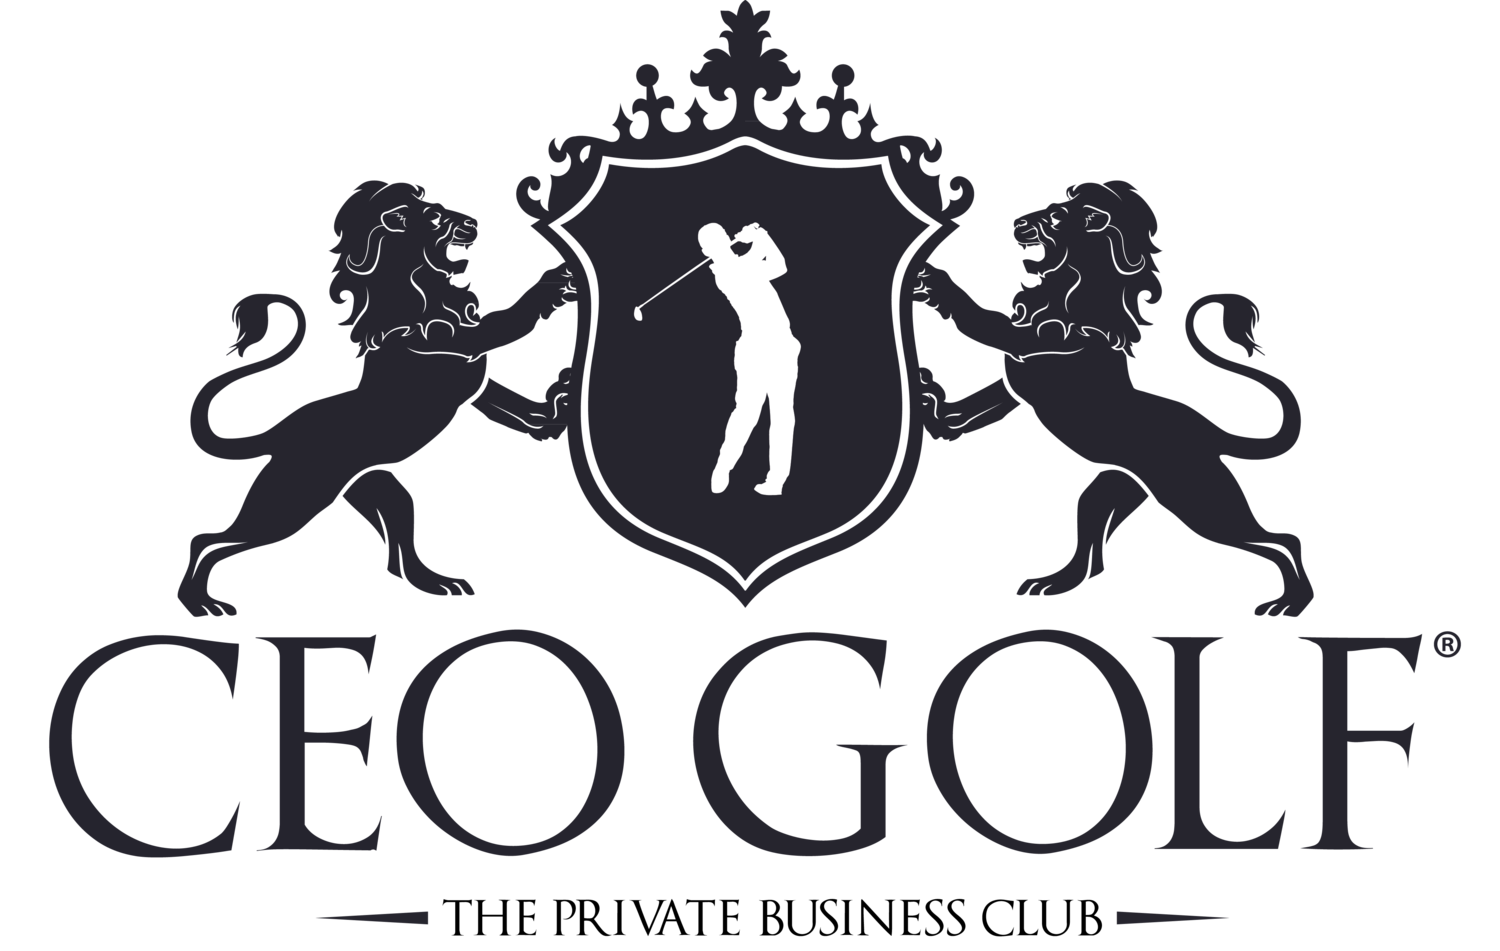 CEO golf club